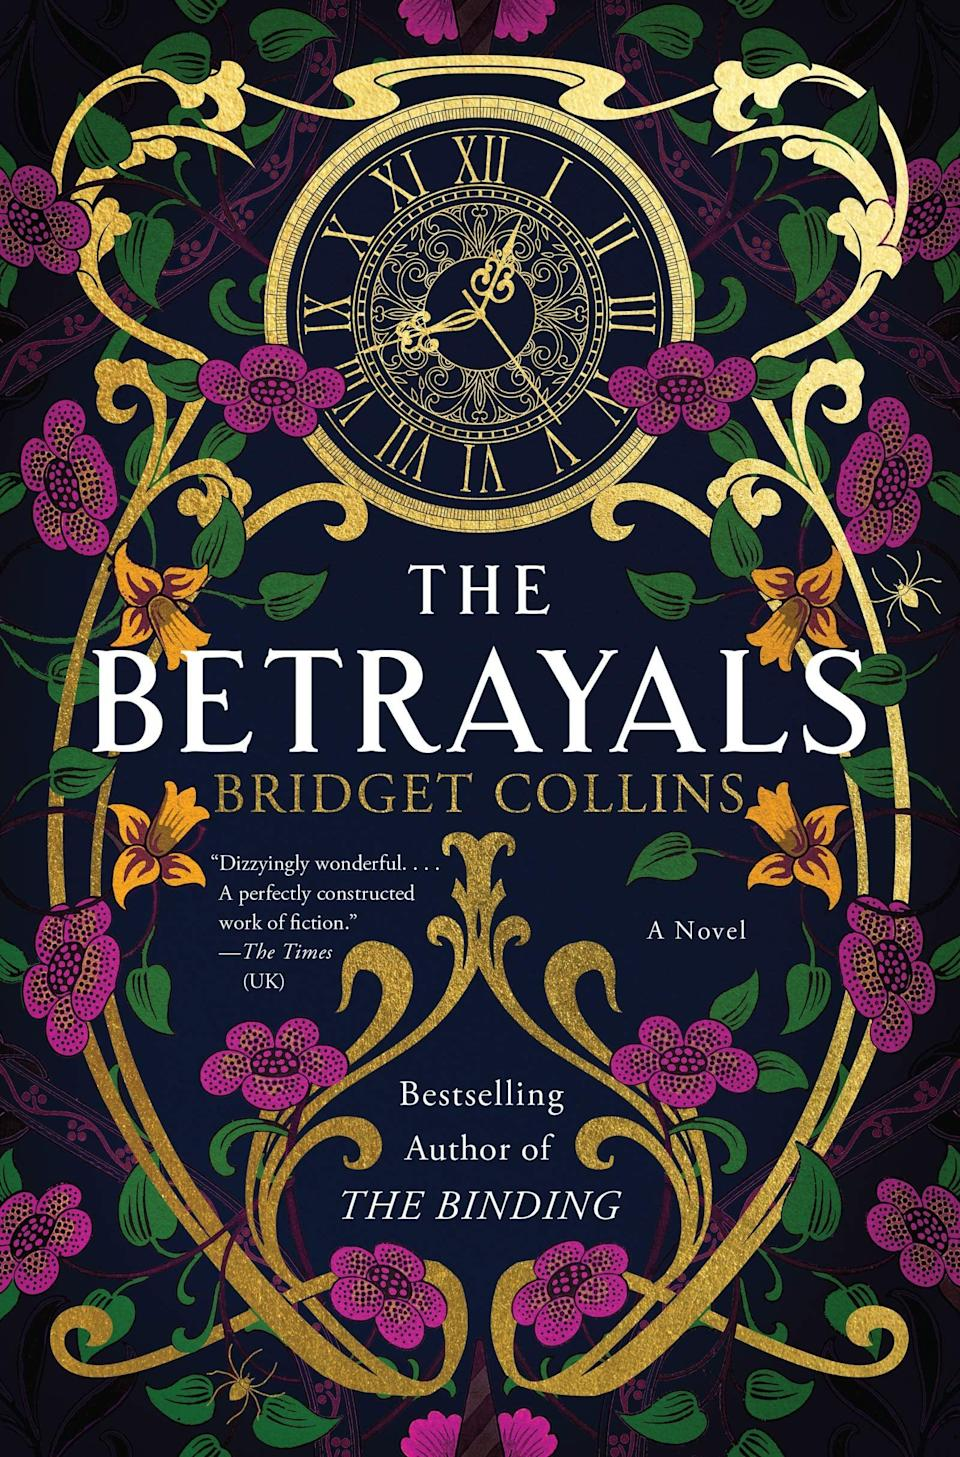 <p><span><strong>The Betrayals</strong></span> by Bridget Collins is a surreal epic set in the ancient academy of Montverre. Tucked away high in the mountaintops, only society's brightest minds are admitted to Montverre, and that includes Léo Martin, a disgraced politician who returns to keep tabs on the school's new leader, Claire Dryden, on the eve of the school's most prestigious event: the Midsummer Game. </p> <p><em>Out May 18</em></p>